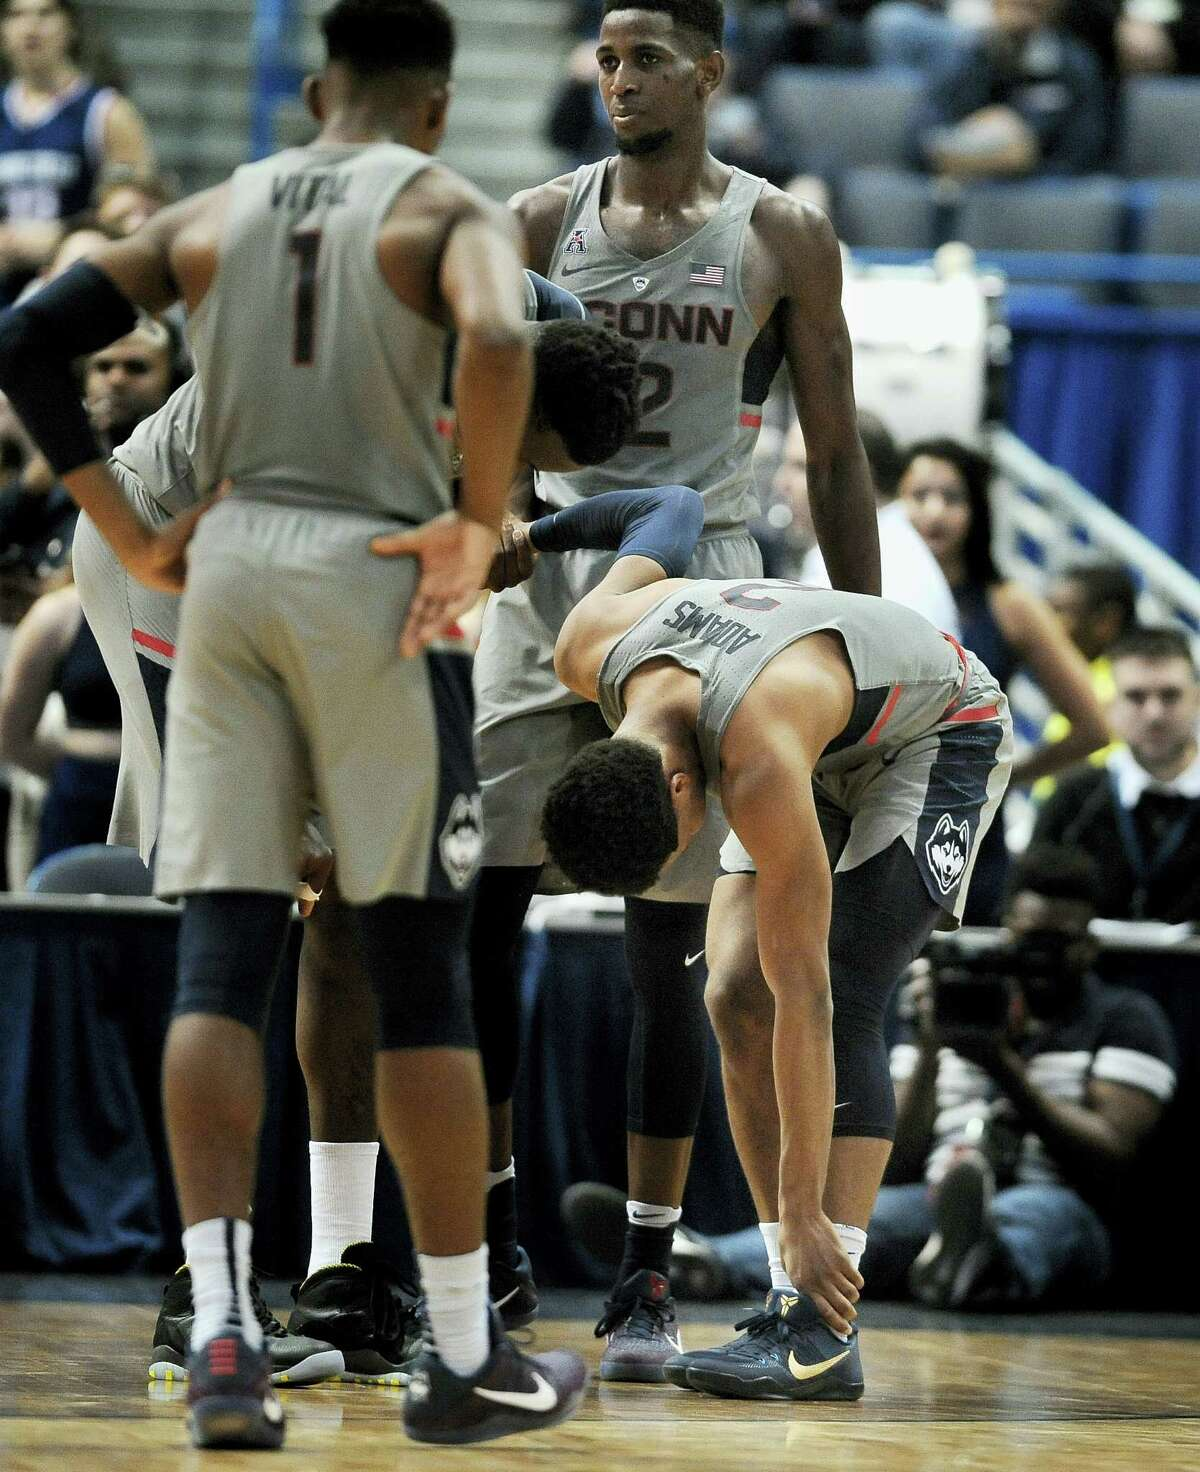 Connecticut's Jalen Adams holds his ankle as his teammates look on after becoming injured in the first half against SMU Saturday. He is expected to be a game-time decision tonight against East Carolina.